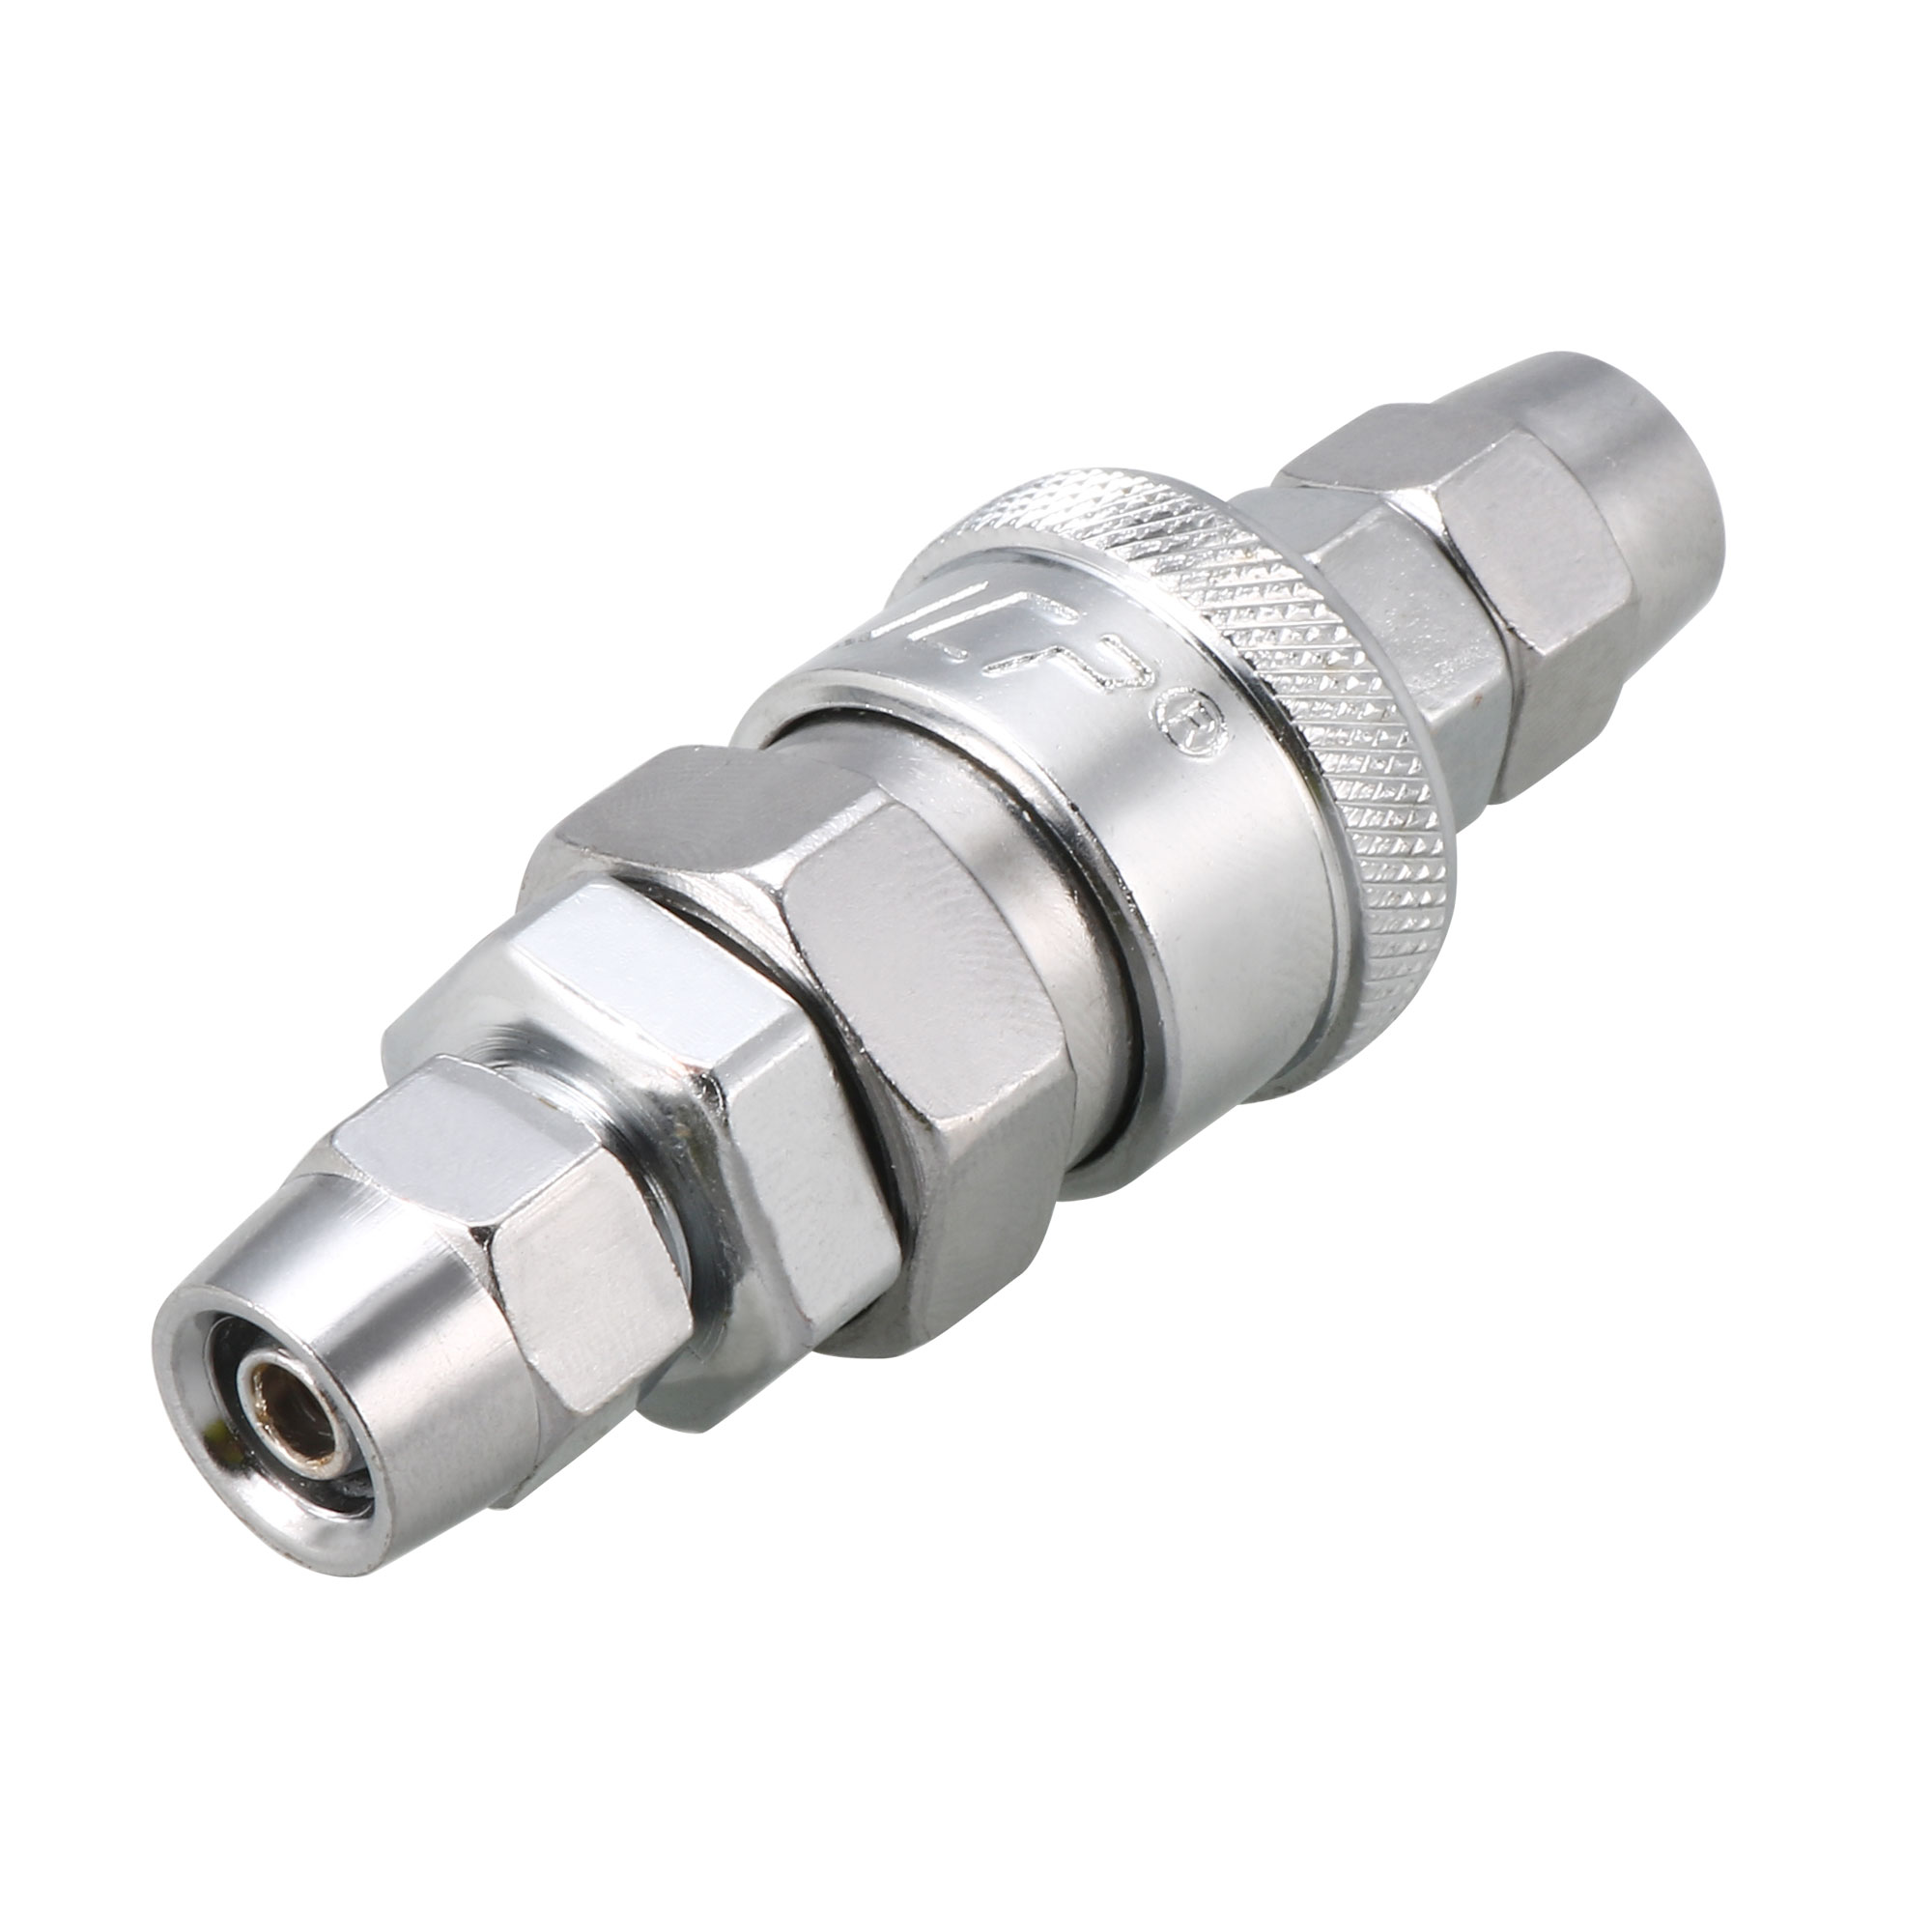 5mm x 8mm Pneumatic Air Hose Quick Fitting Connector Coupler Connector Adapter